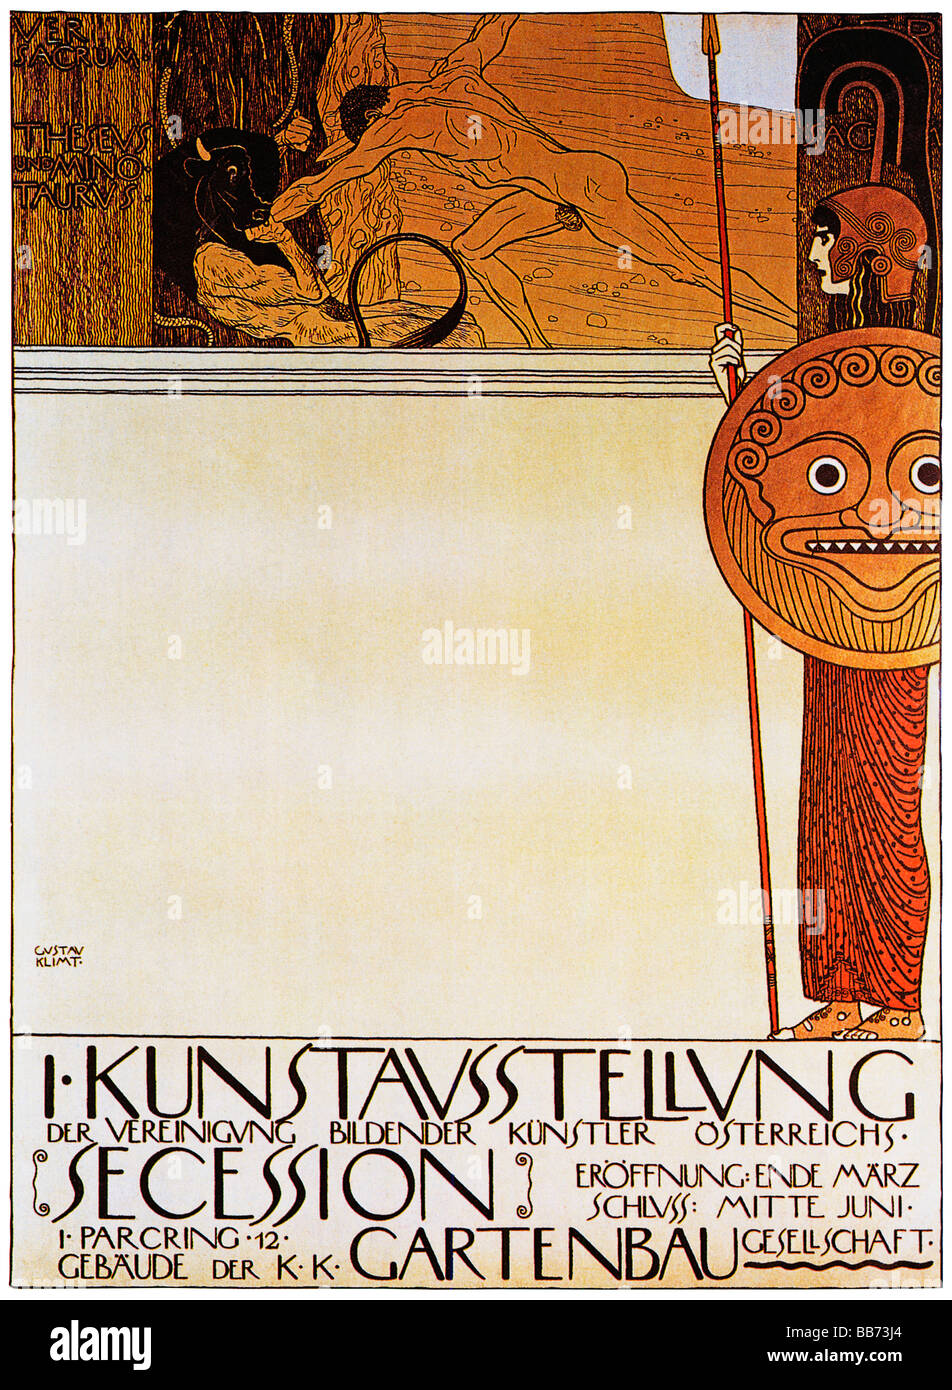 Gustav Klimt Theseus and the Minotaur 1898 Art Nouveau poster for the first Vienna Secession exhibition - Stock Image